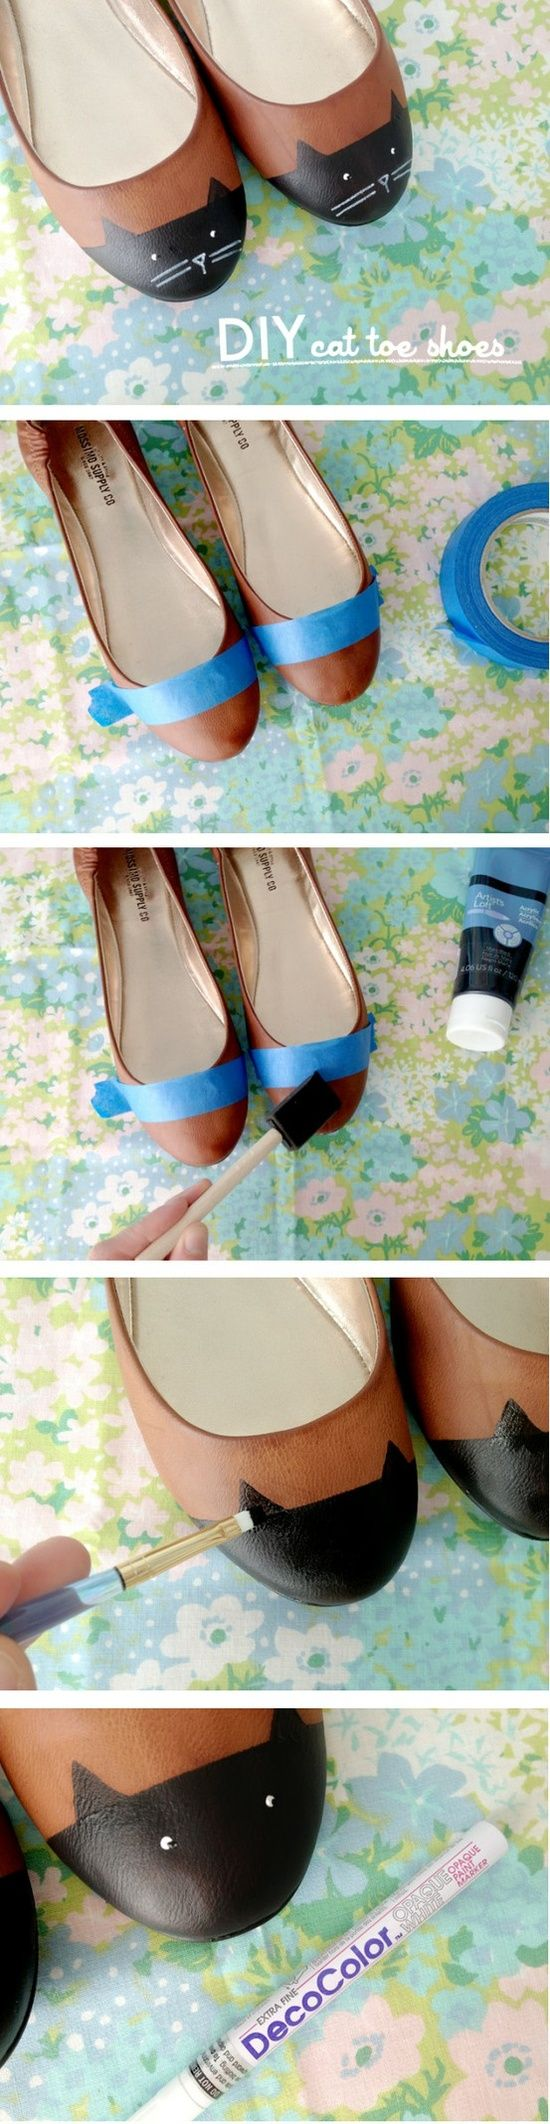 @Joan Cunnings DIY cat toed shoes... I thought of you and conversation about these